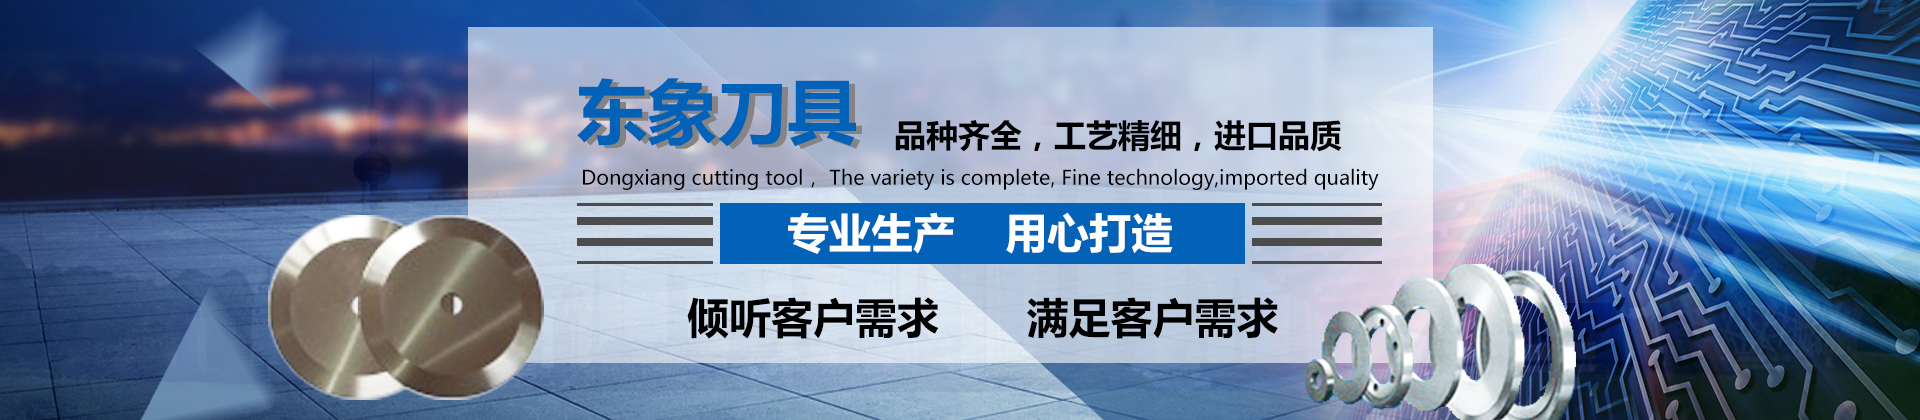 http://www.dongxiangdp.com/data/images/slide/20190813162100_243.jpg